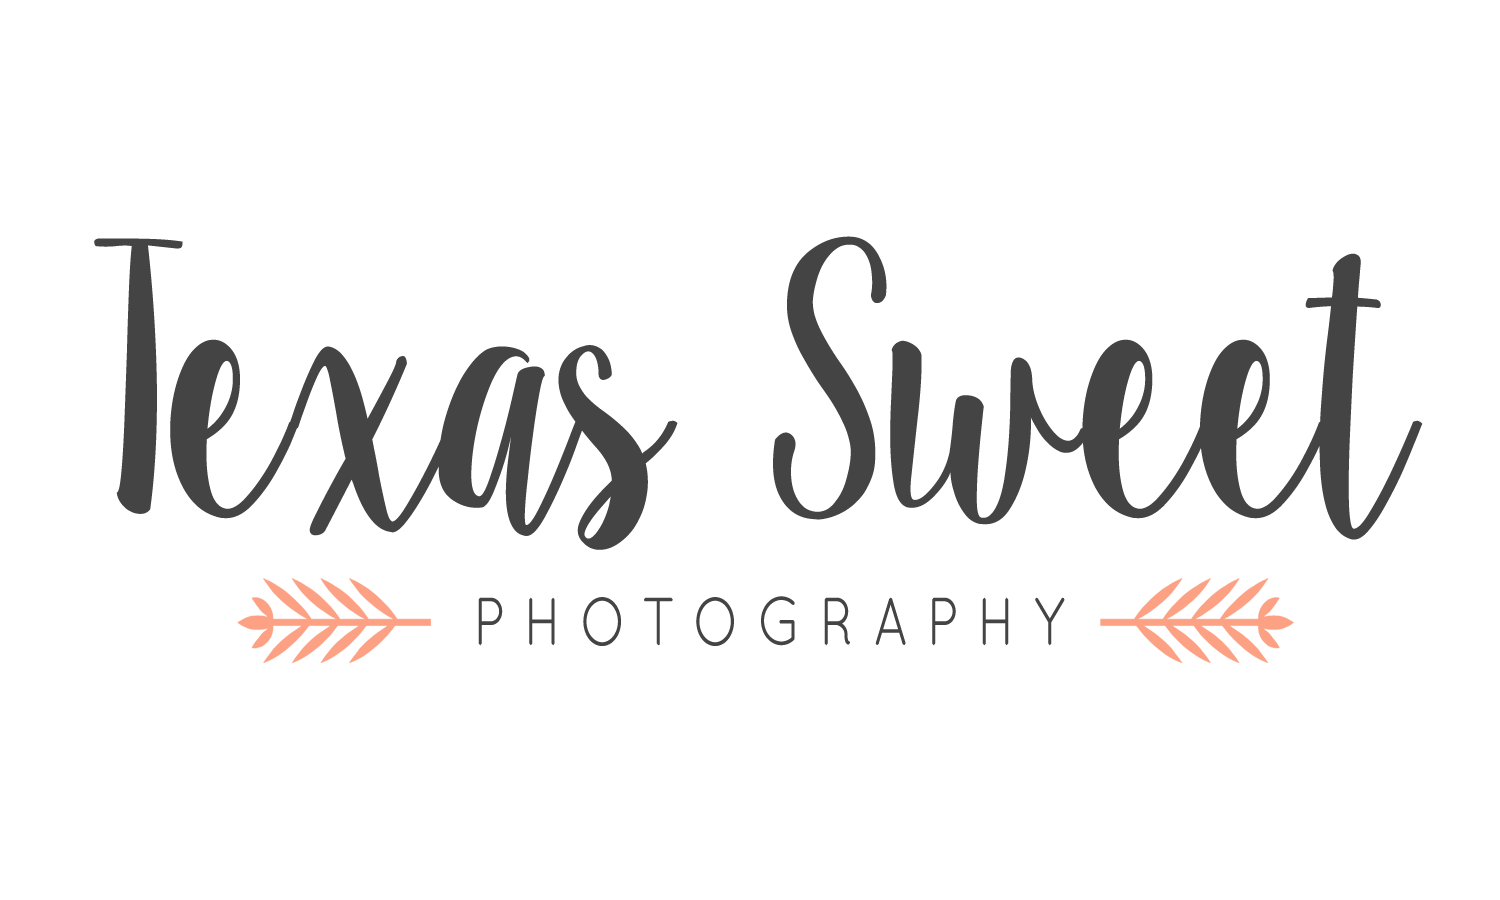 Texas Sweet Photography